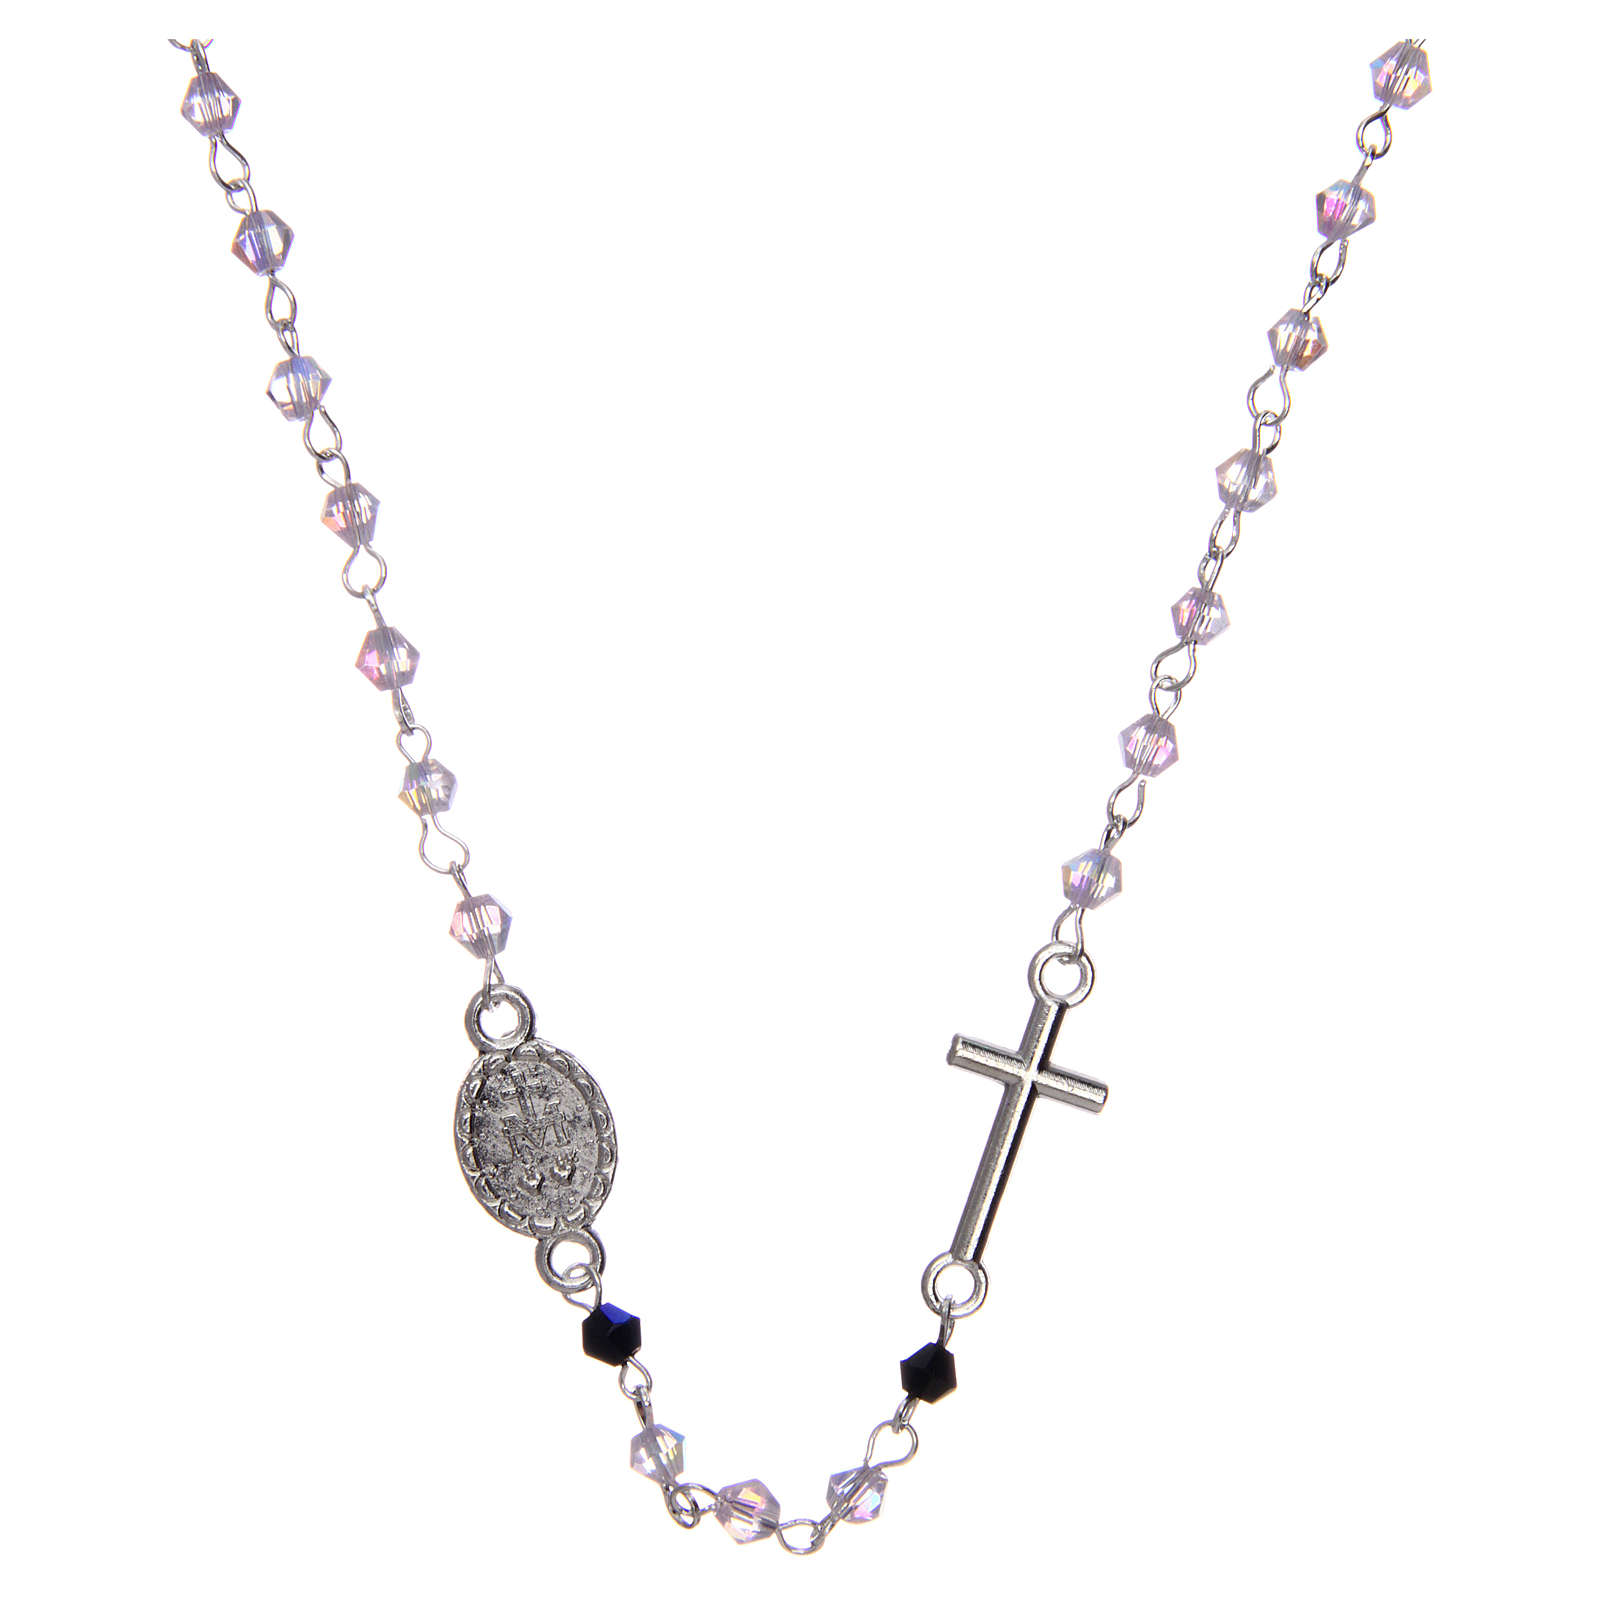 Wearable rosary with 3mm oval beads in transparent and iridescent crystal 4